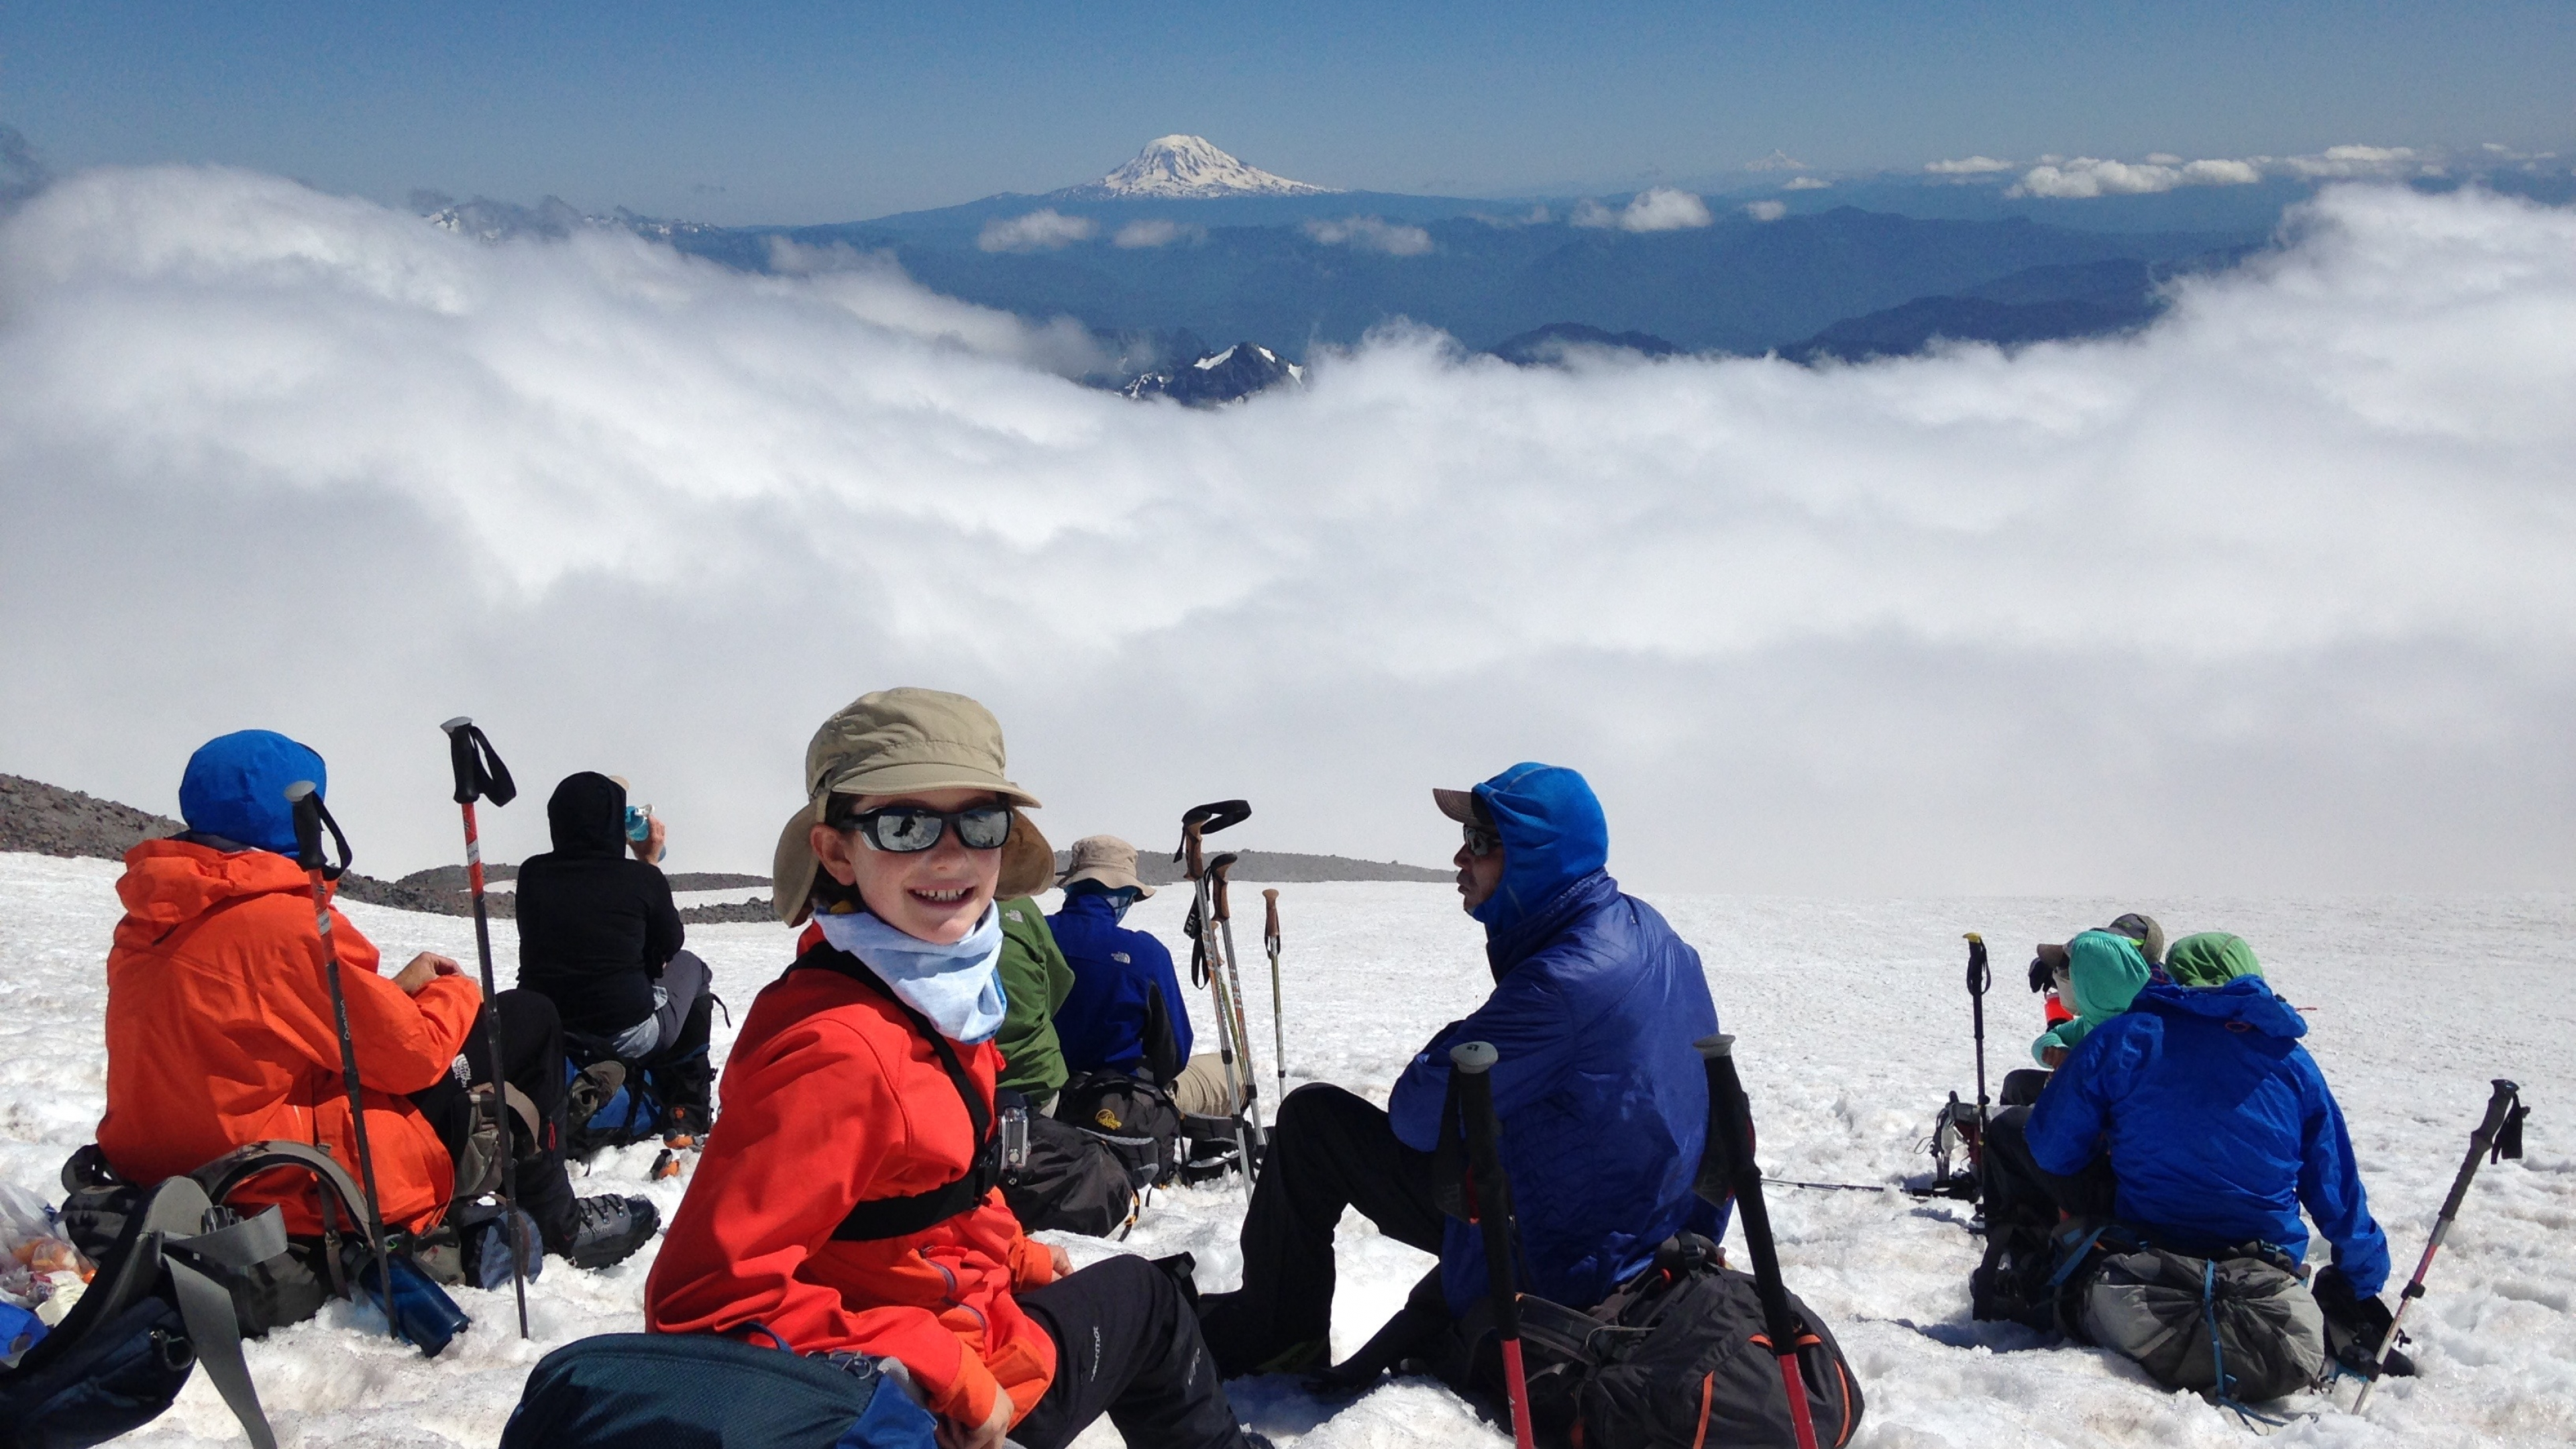 Lucy sitting on her backpack on the mountain, looks back at camera and smiles, wearing winter gear